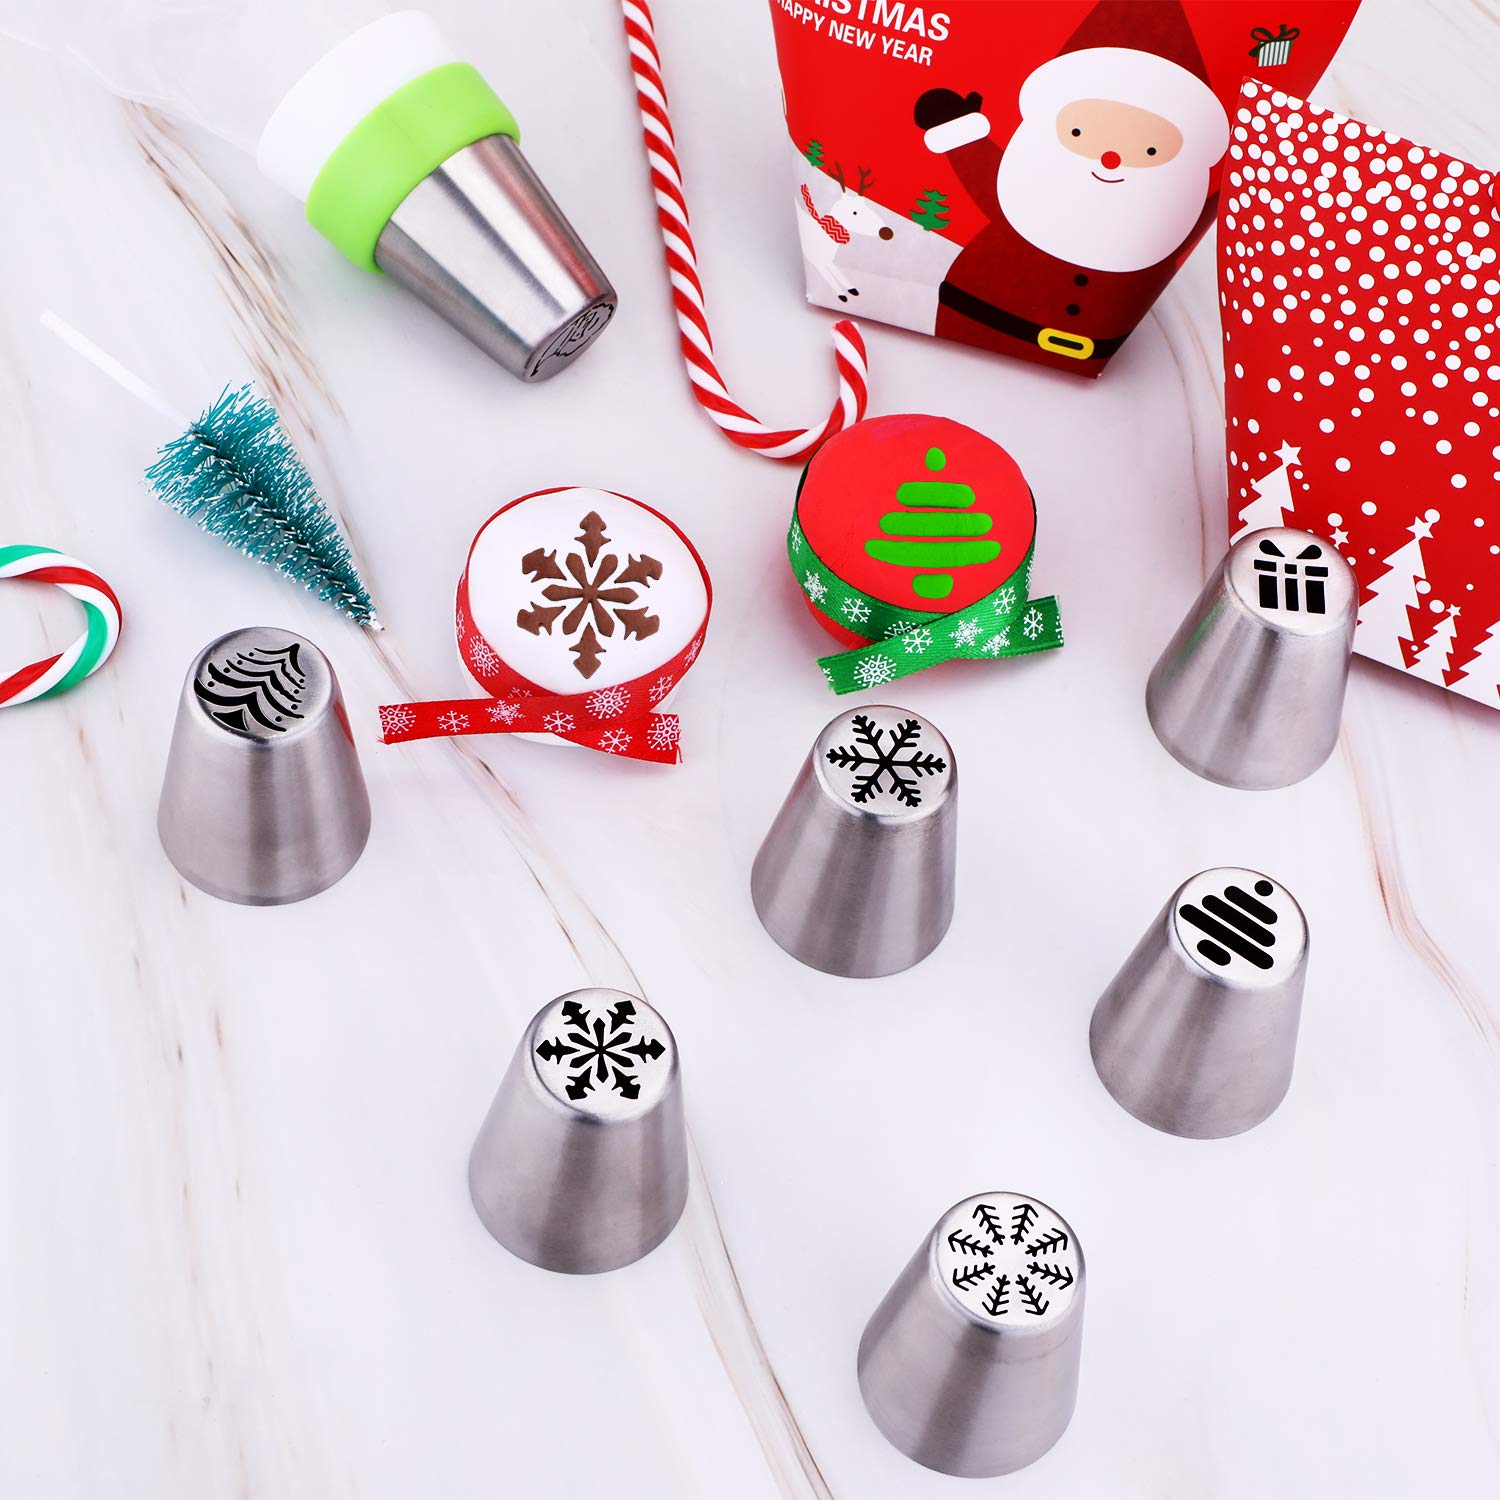 Gejoy 16 Pieces Russian Piping Tips Christmas Cake Icing Frosting Nozzle with Coupler for Cupcake Decoration Christmas Design